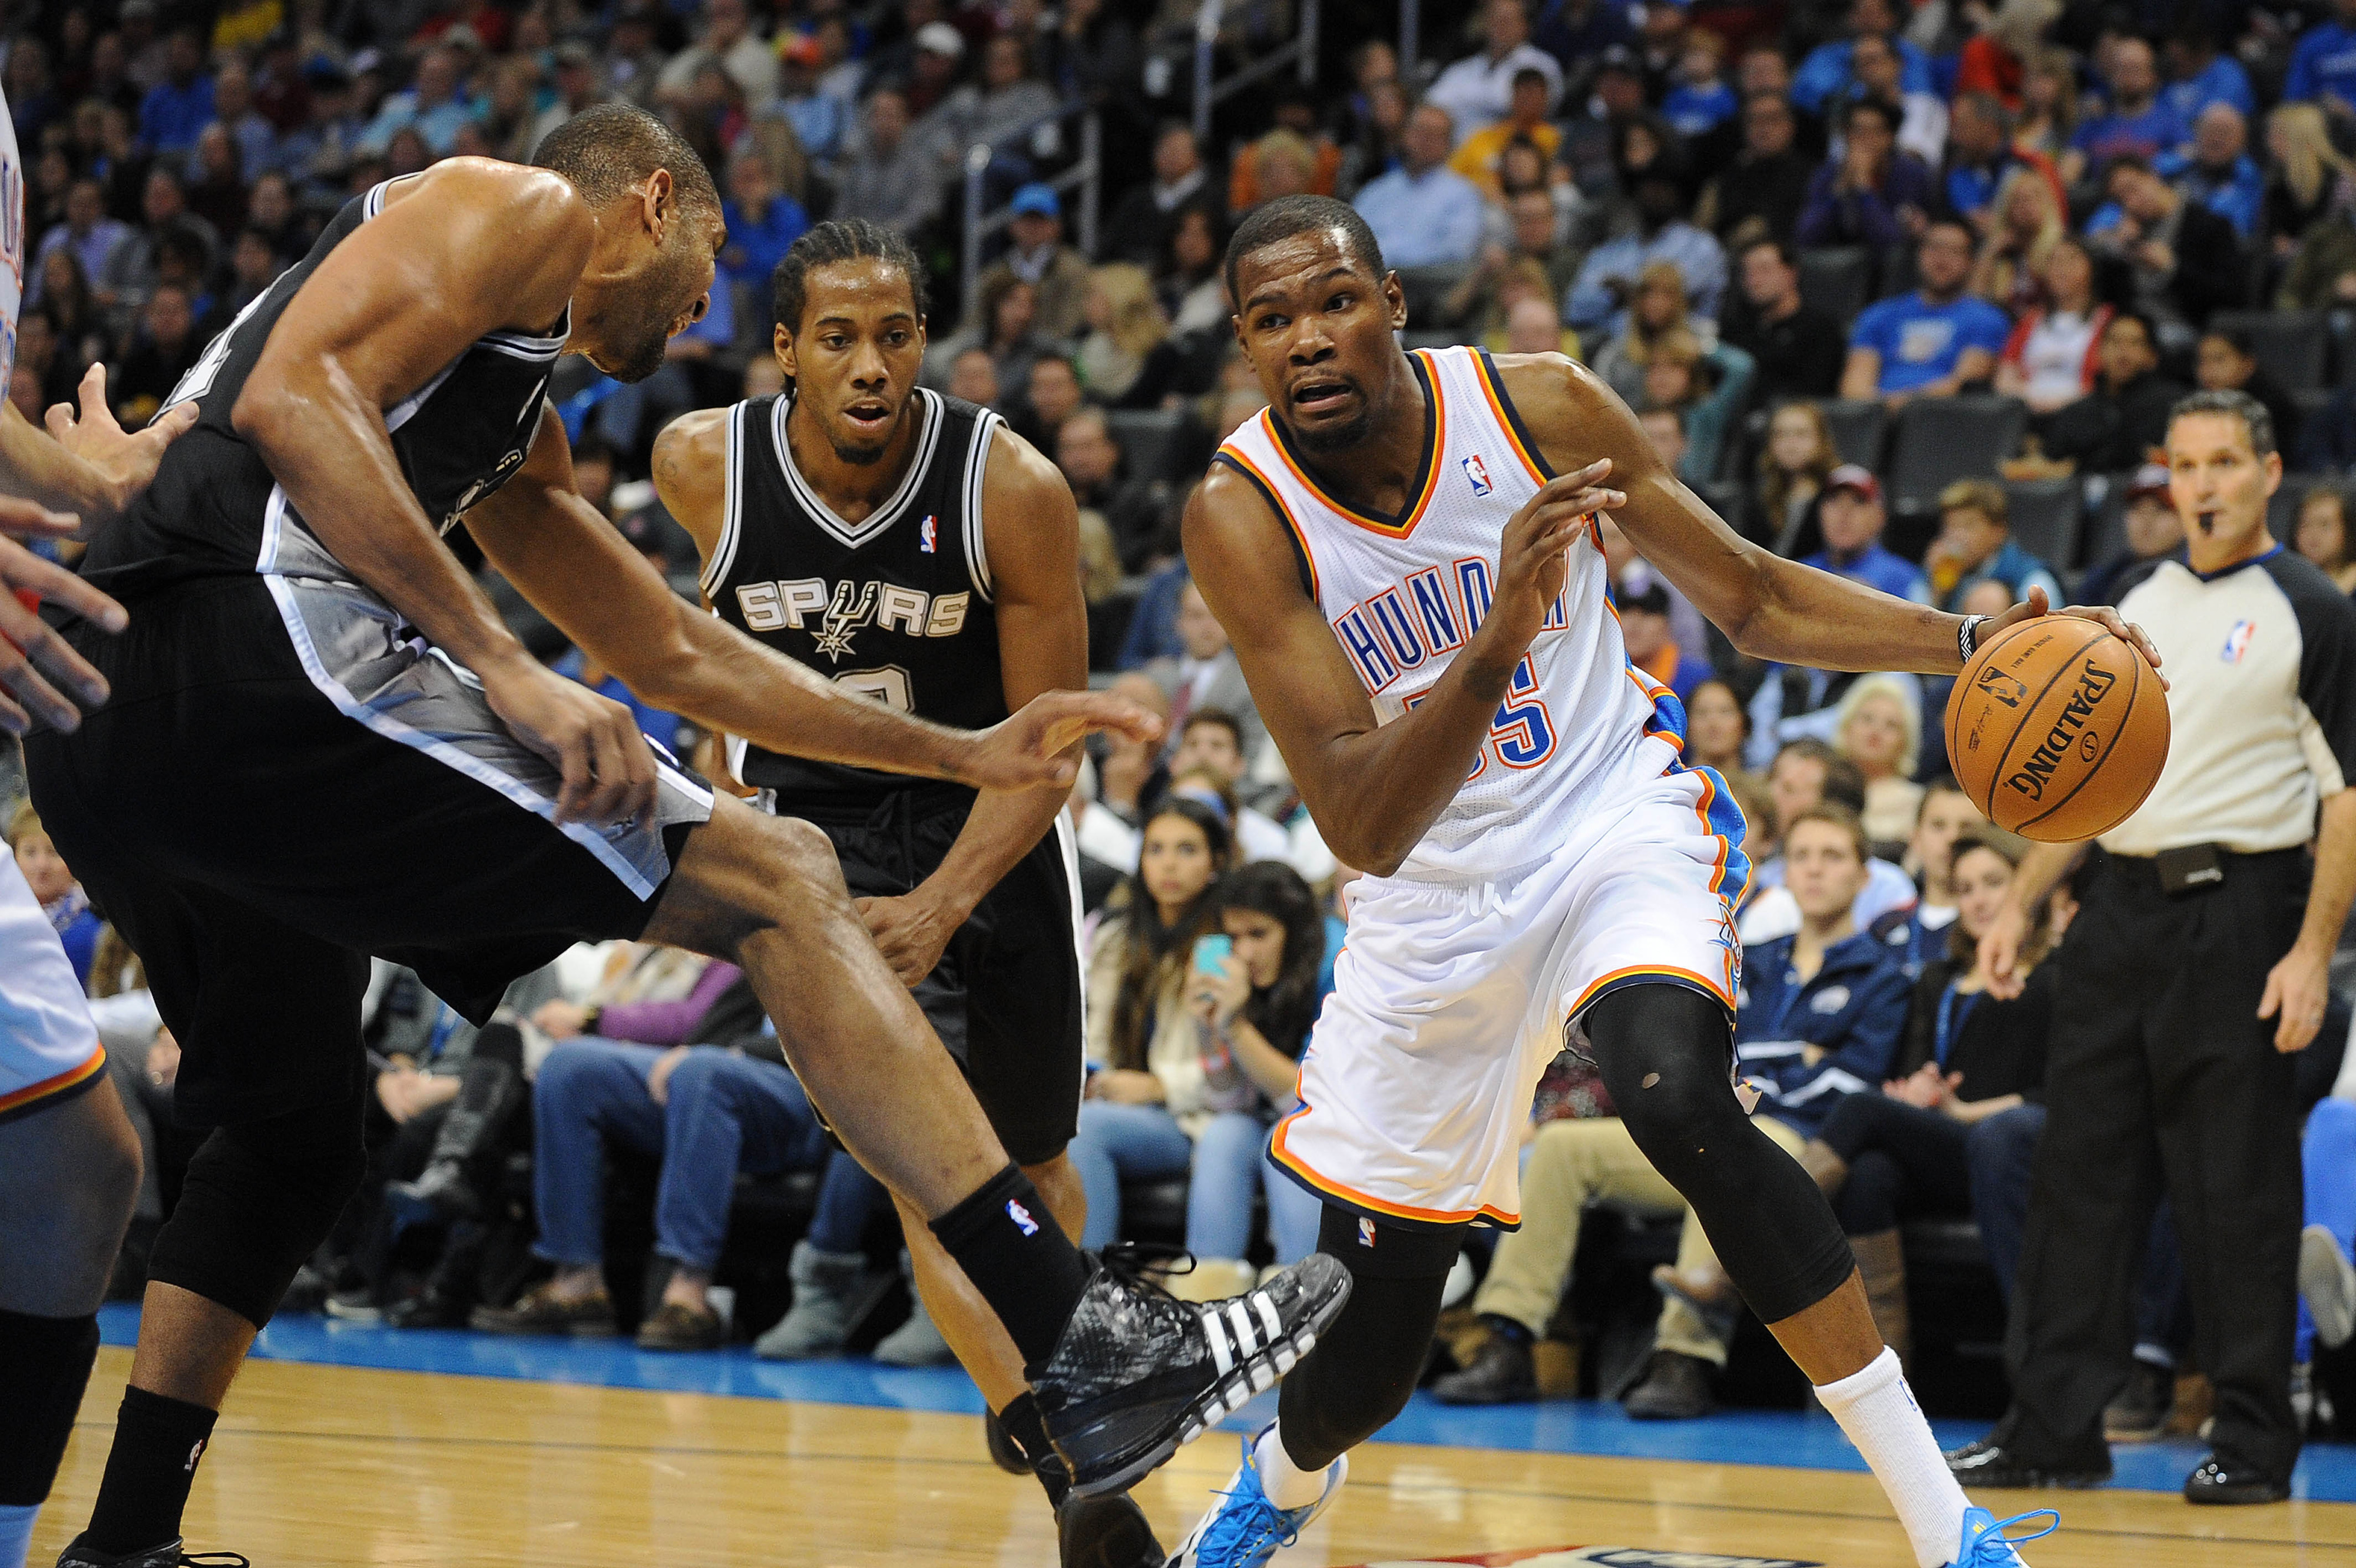 Spurs vs. Thunder final score: OKC overcomes brutal night from Russell Westbrook in 94-88 win